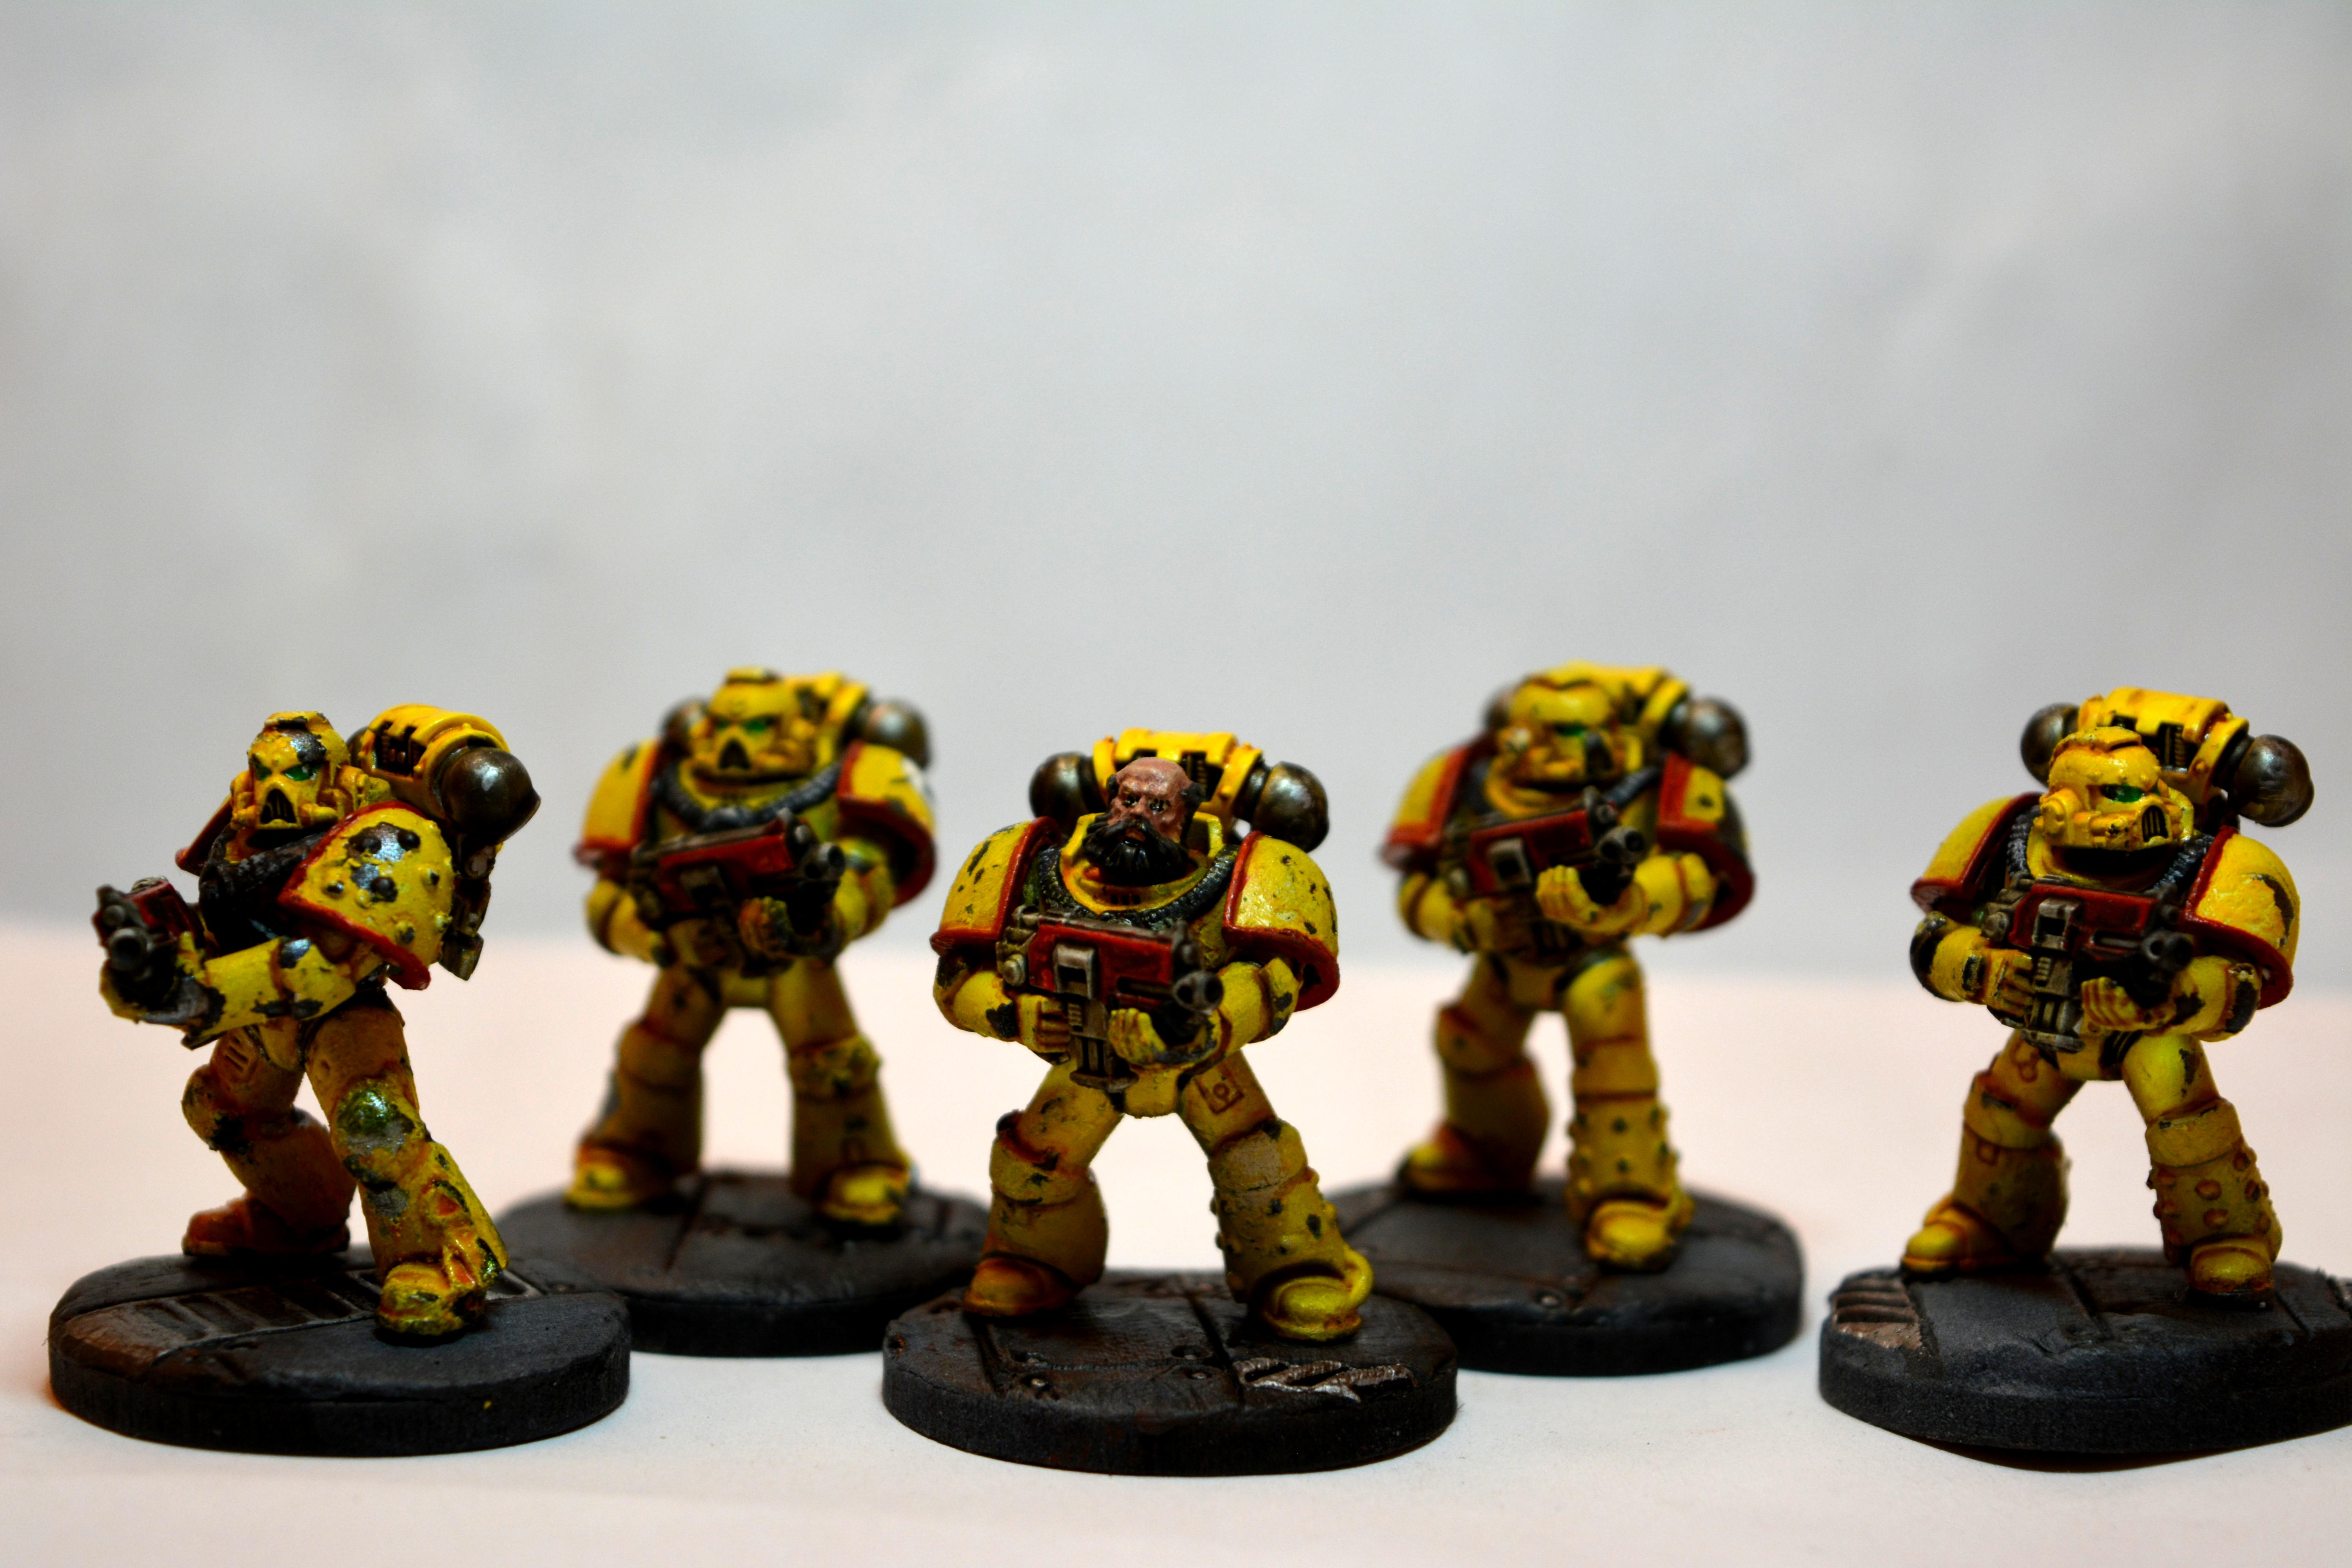 Fists, Imperial, Imperial Fists, Space, Space Marines, Warhammer 40,000, Warhammer Fantasy